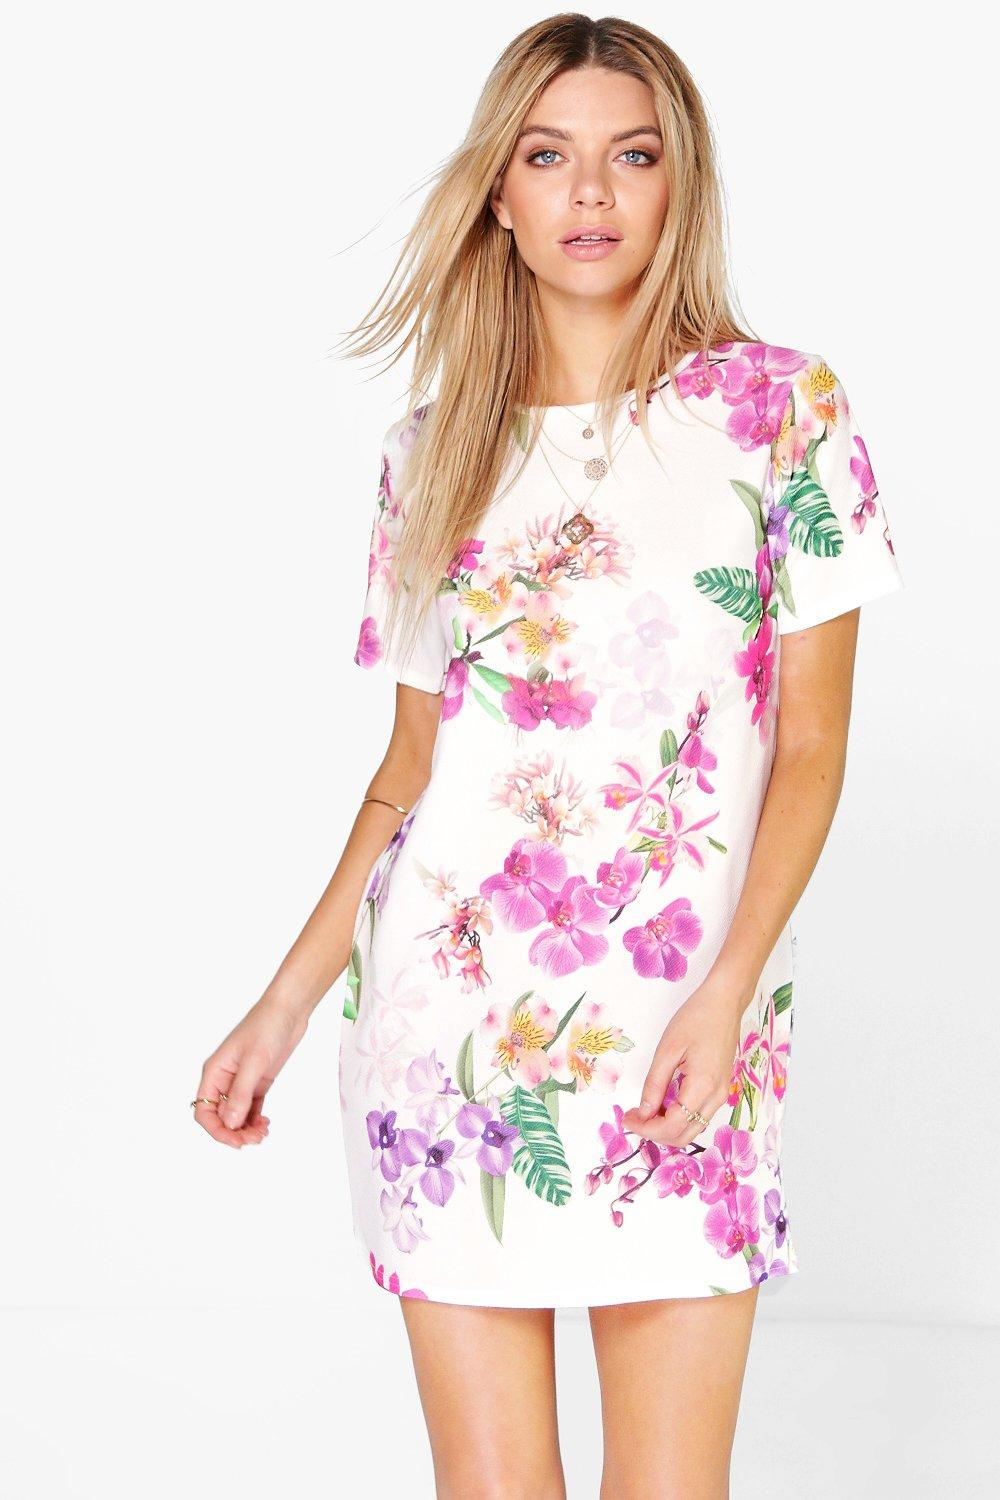 Buy Shift dresses online in multiple avatars Want to get hold of that perfect shift dress online' You are certainly at the right place! trueufilv3f.ga helps you find some of the most alluring options online.